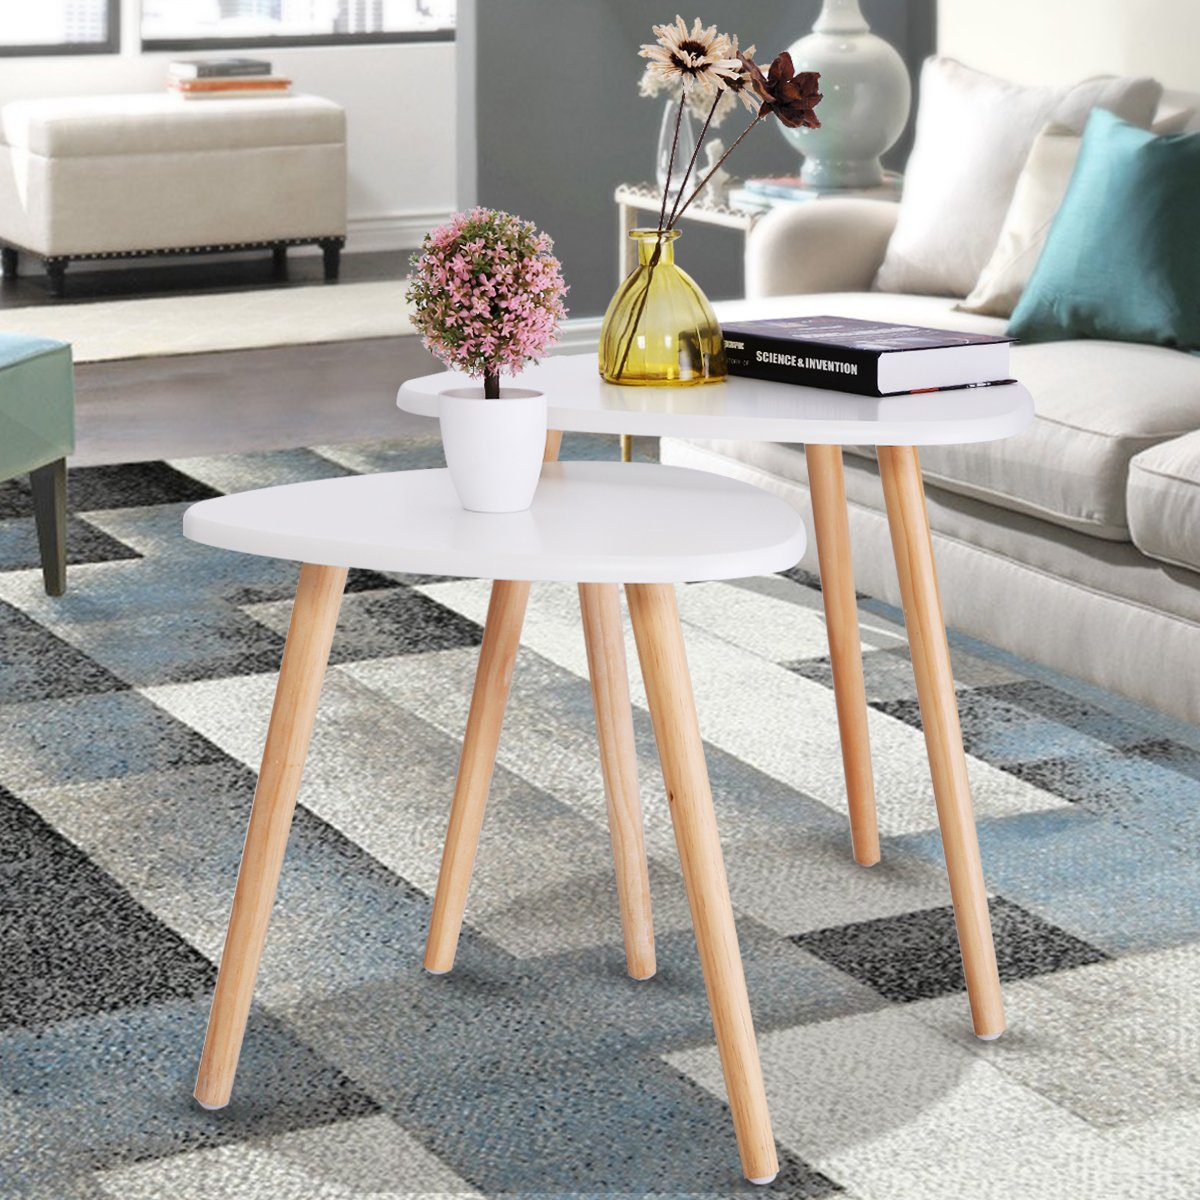 LAZYMOON Set of 2 White Wood Triangle End Table Mid-century Modern Nesting Side Table Accent Style